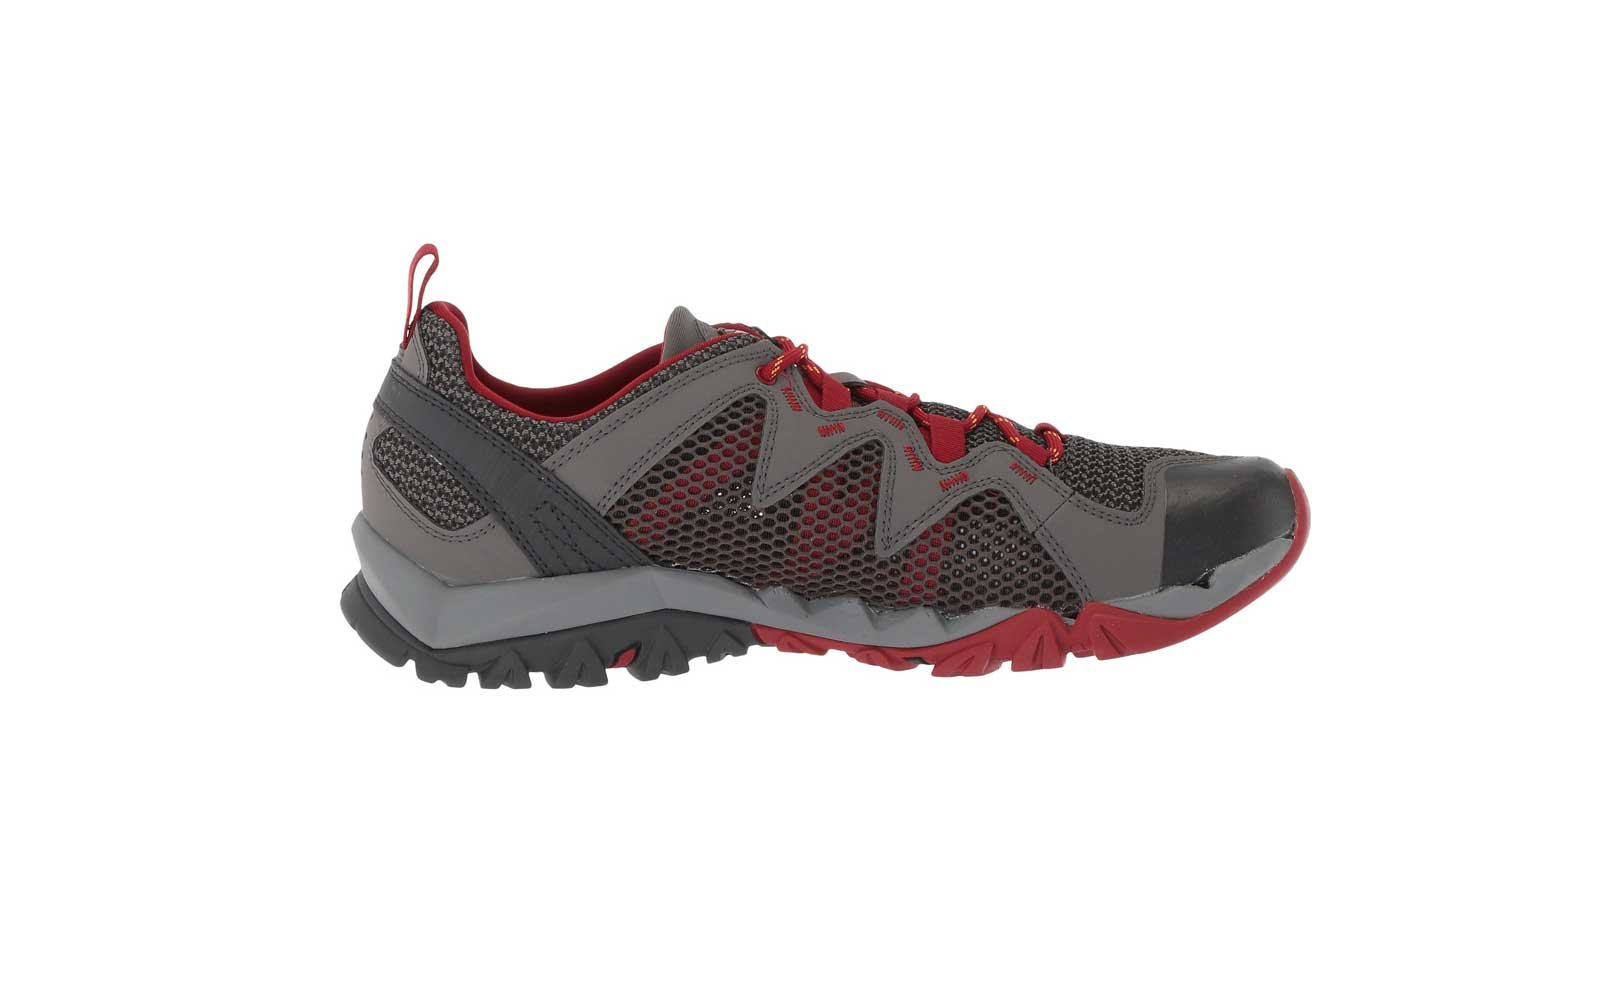 merrell mens water shoes